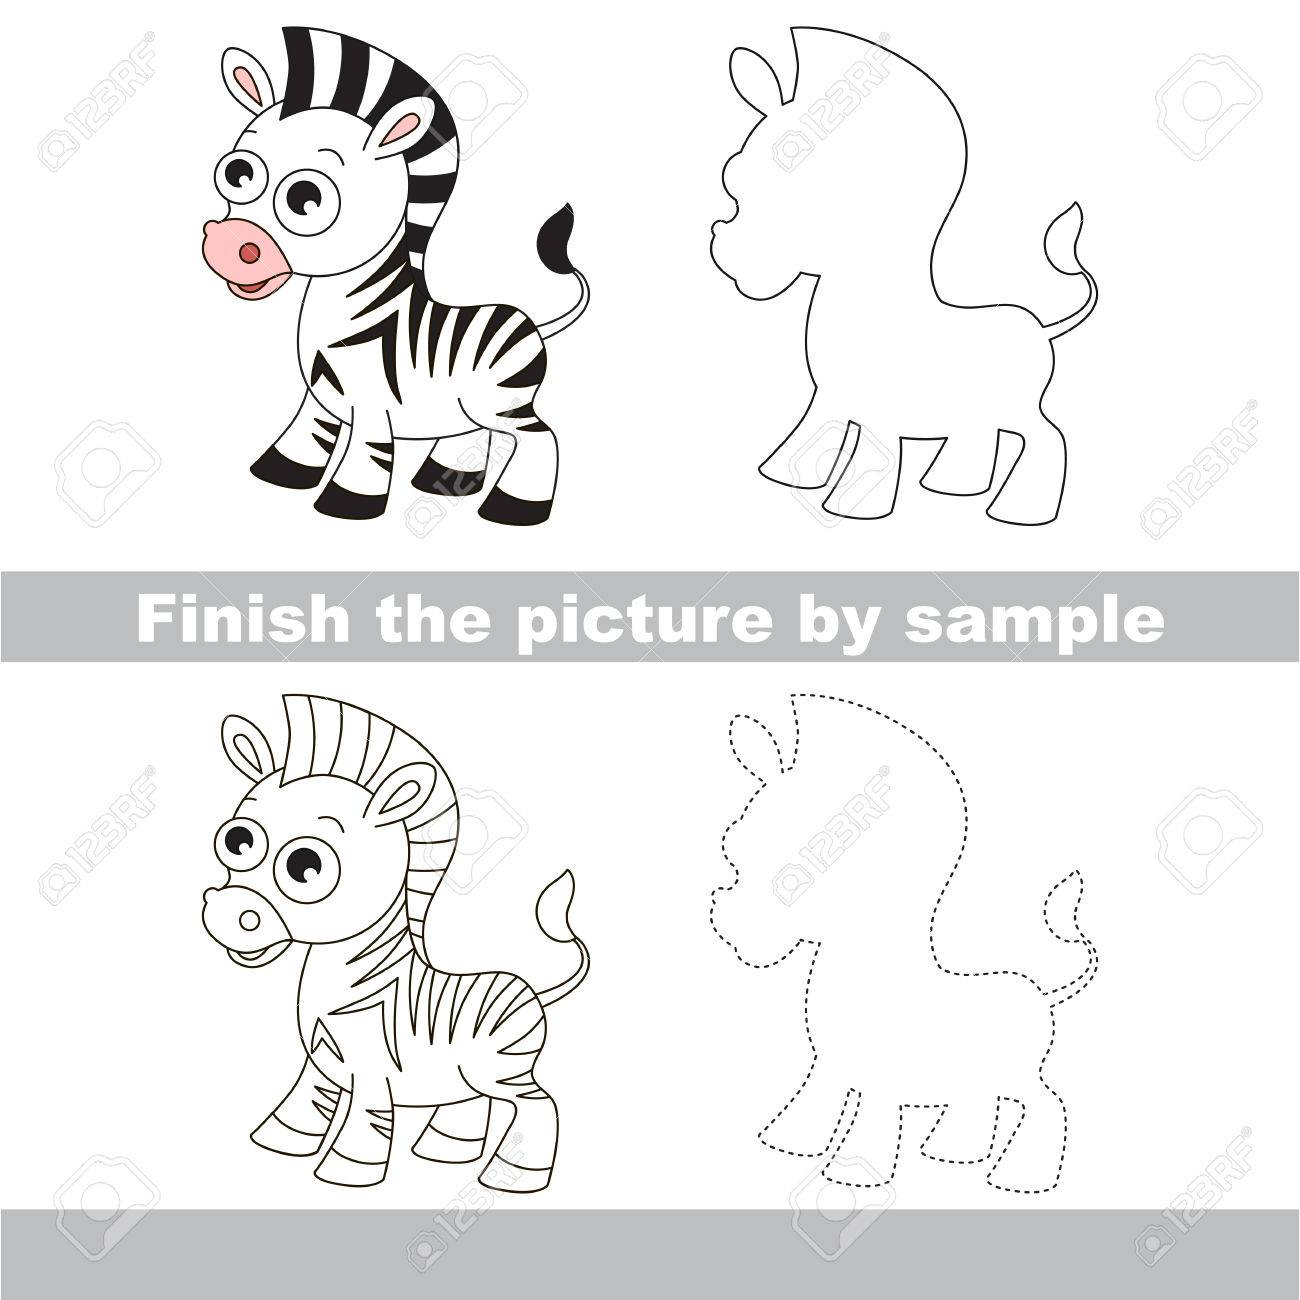 drawing worksheet for children finish the picture and draw the cute zebra stock vector - Children Drawing Sheets